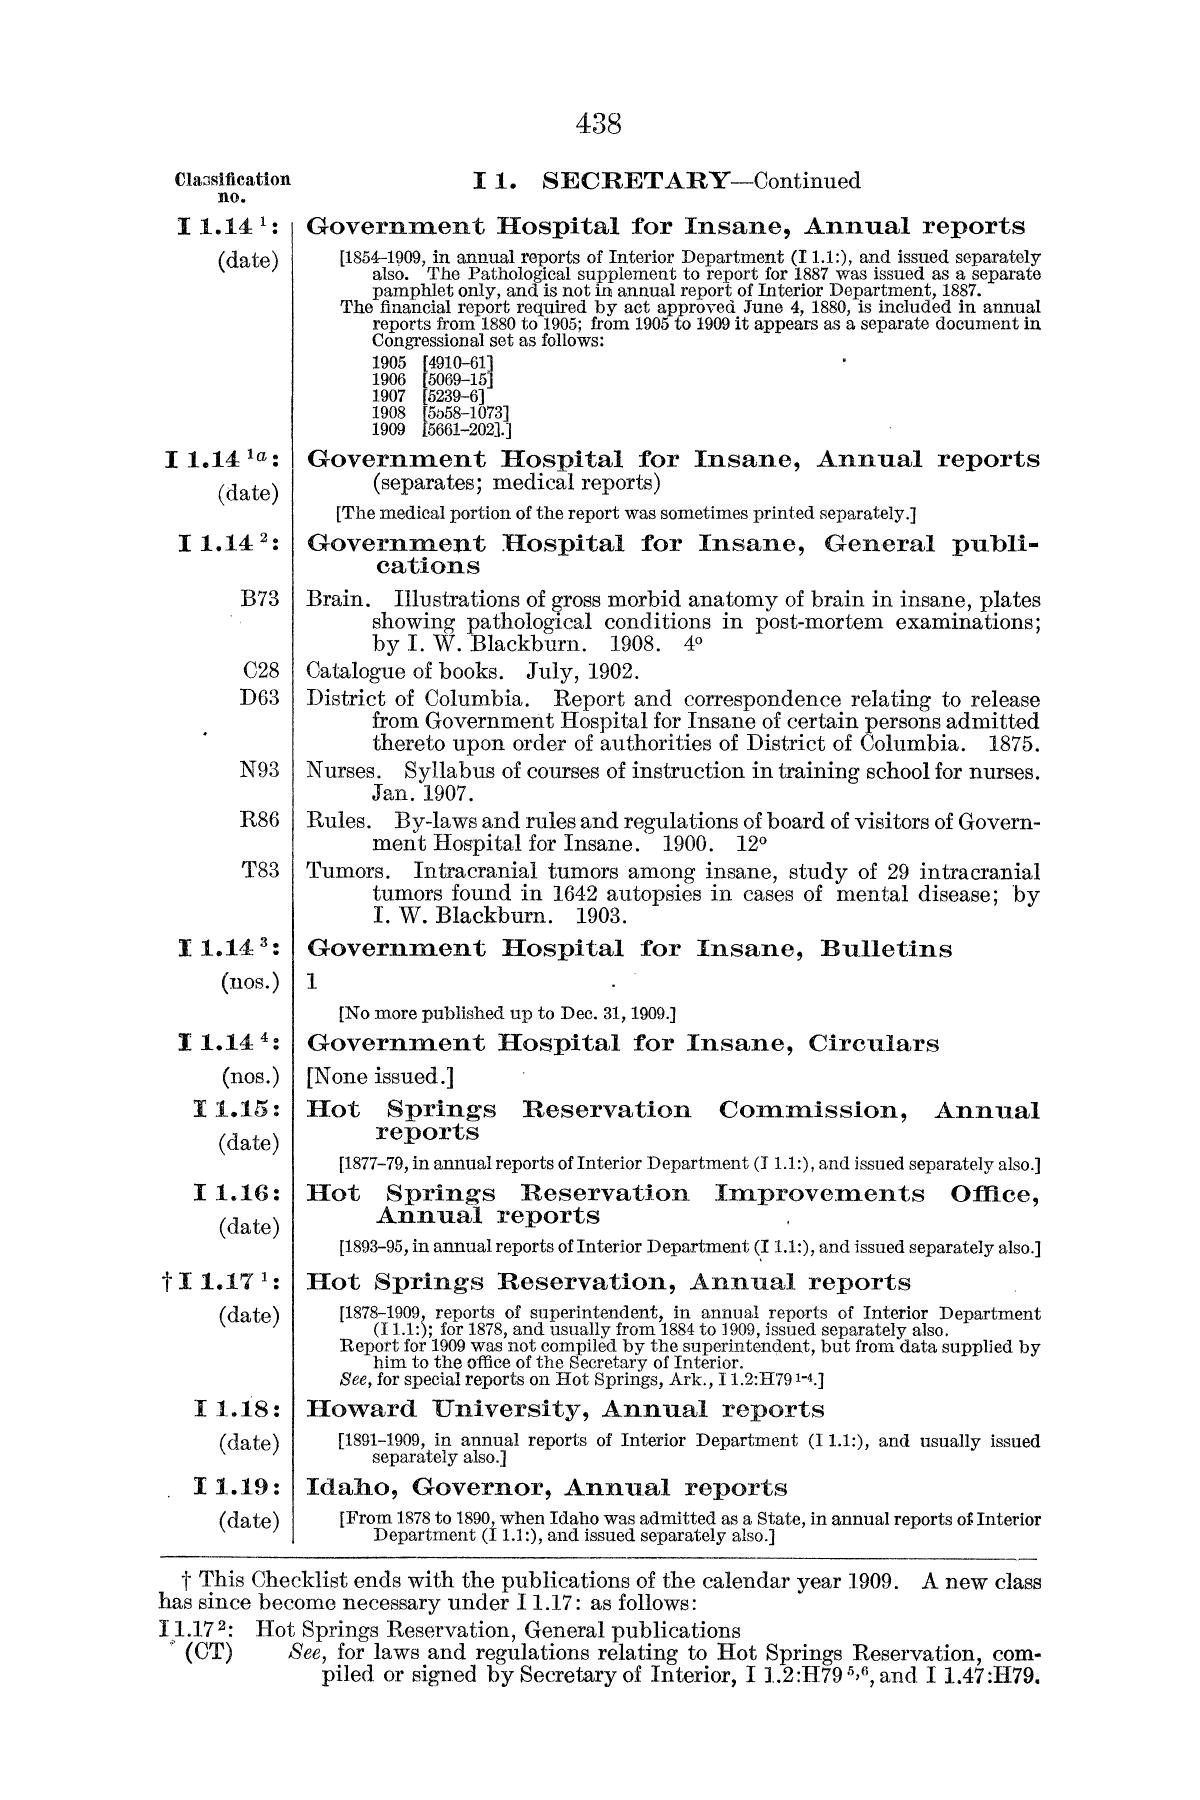 Checklist of United States Public Documents, 1789-1909, Third Edition Revised and Enlarged, Volume 1, Lists of Congressional and Departmental Publications                                                                                                      438